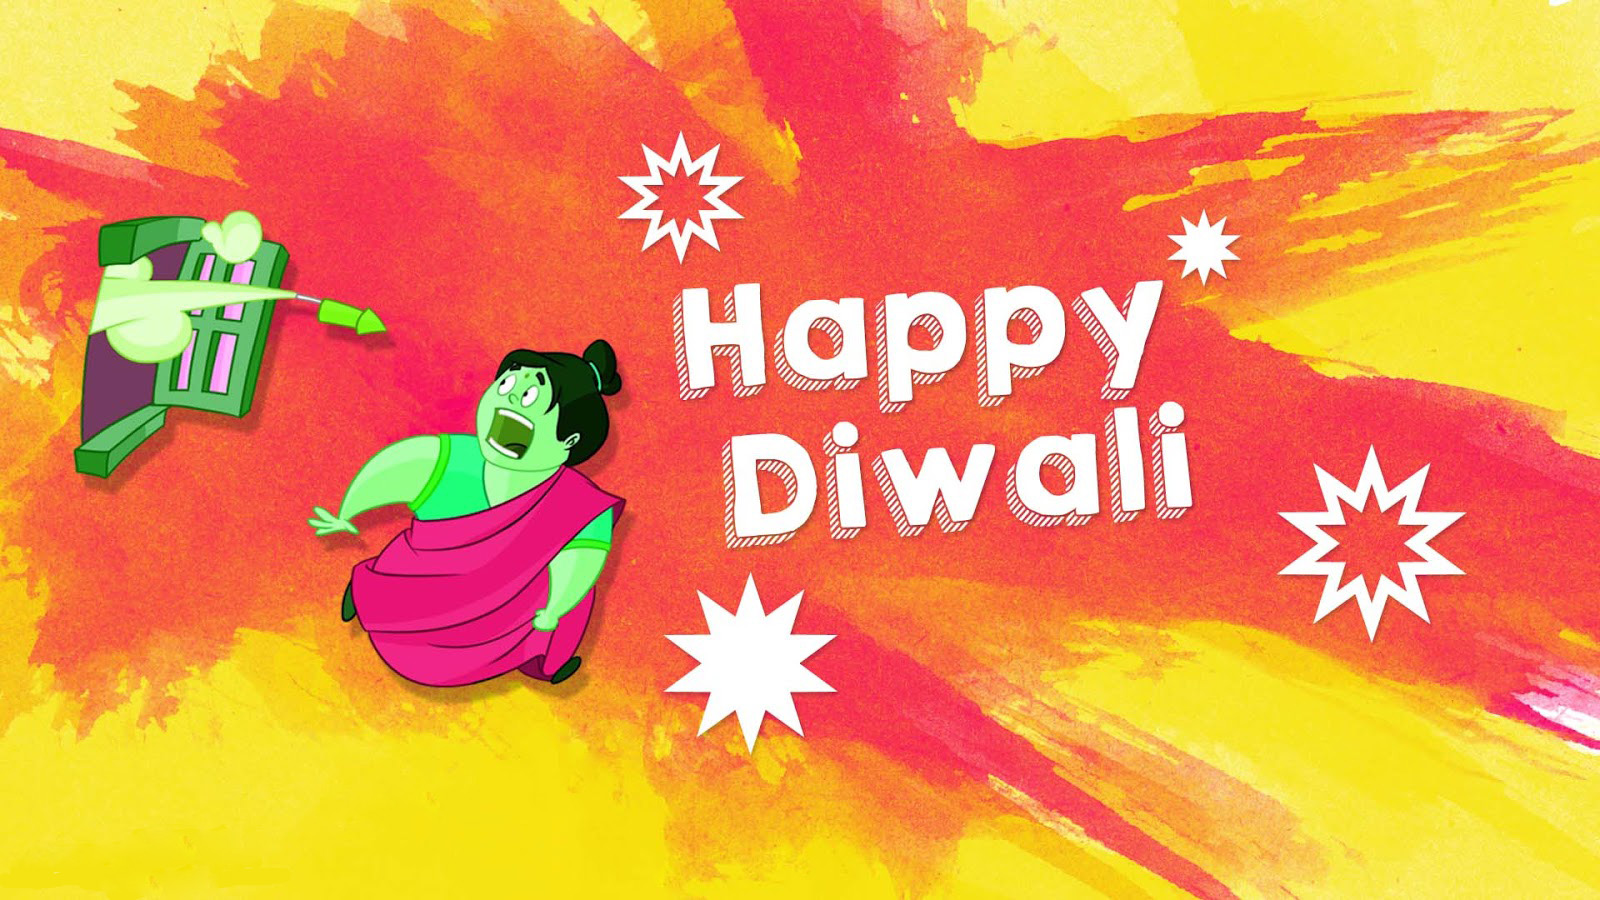 Happy Diwali Wishes From Slice Team Slice Your Life